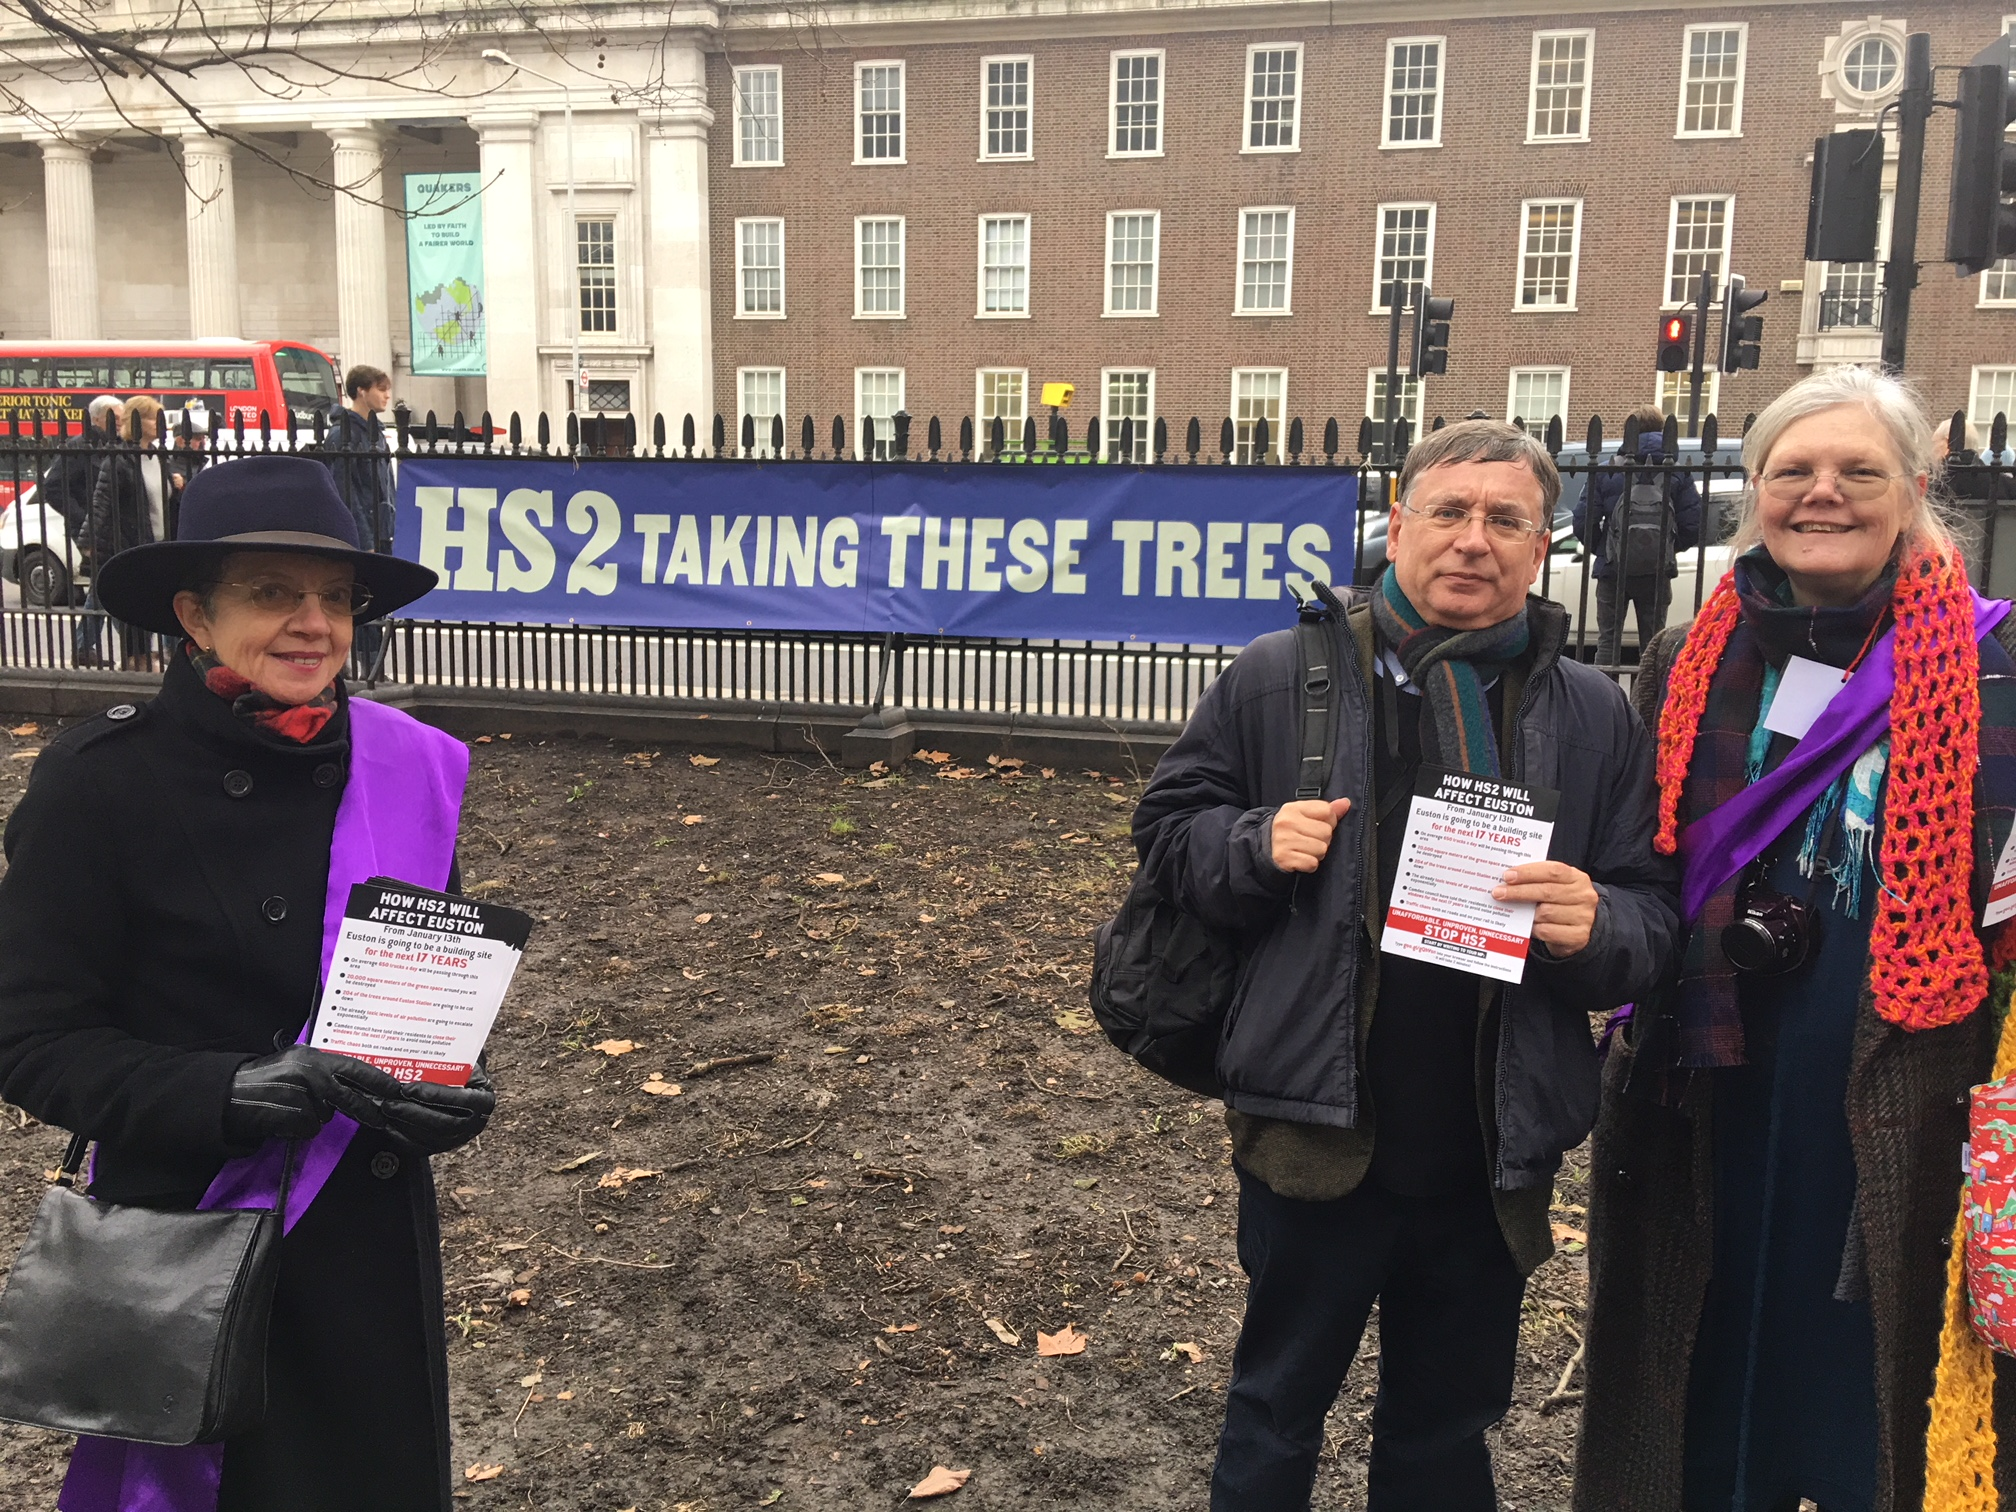 HS2 Trees protest